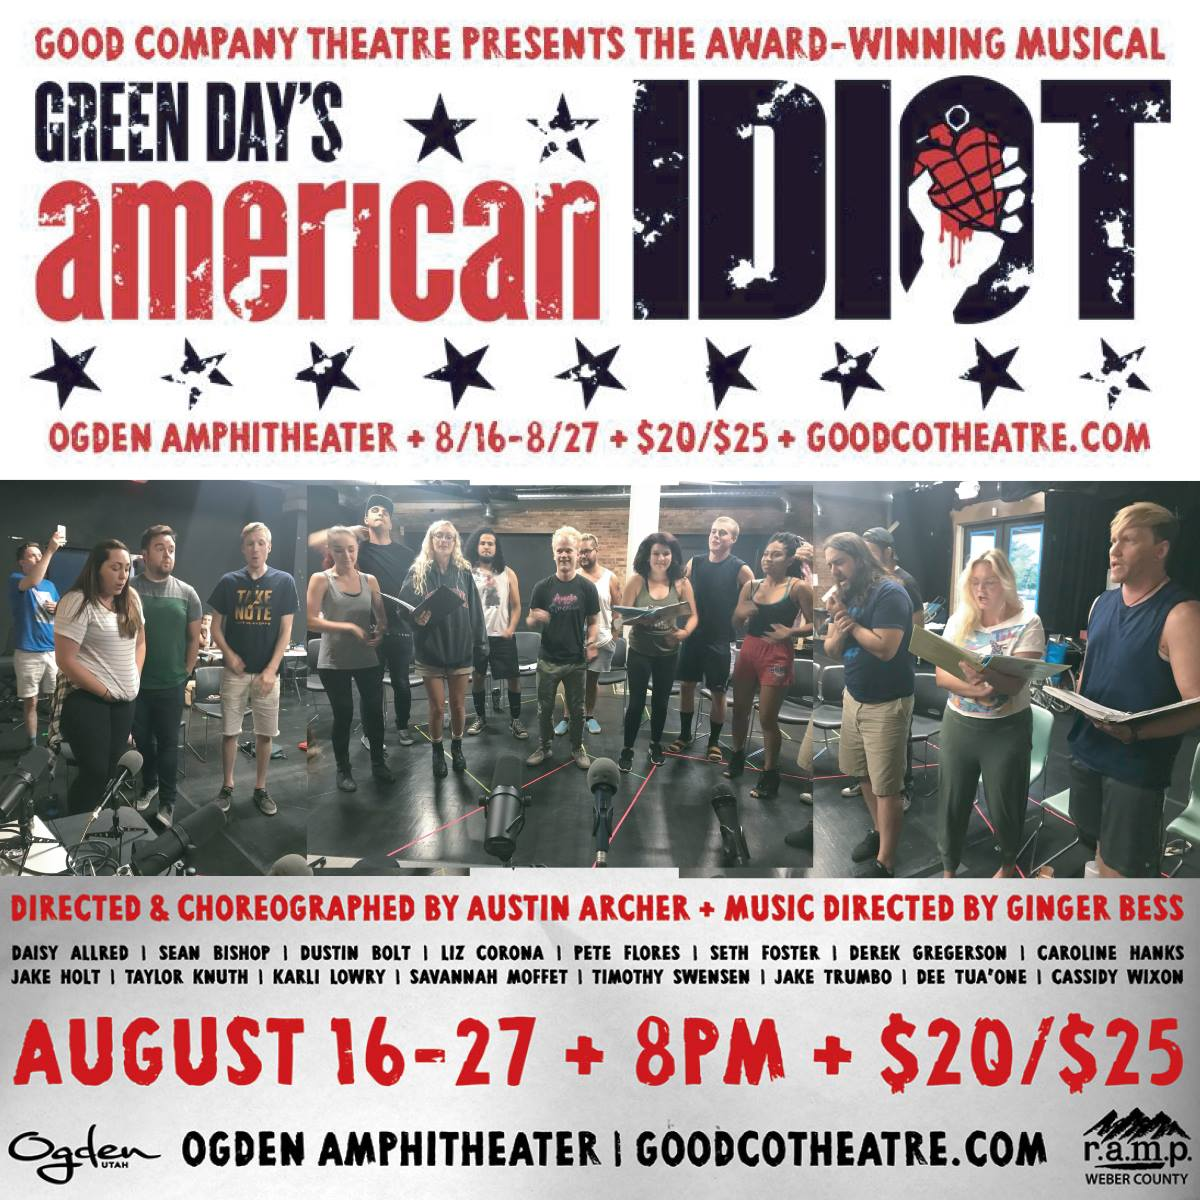 Full cast of Good Company Theater's production of Green Day's American Idiot during their private rehearsal performance for the Nine Rails Arts Podcast.